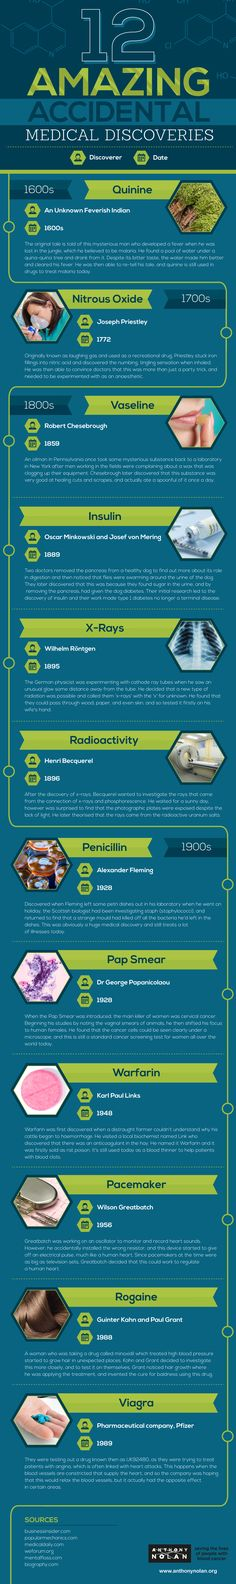 12 Amazing Accidental Medical Discoveries #Infographic #Health